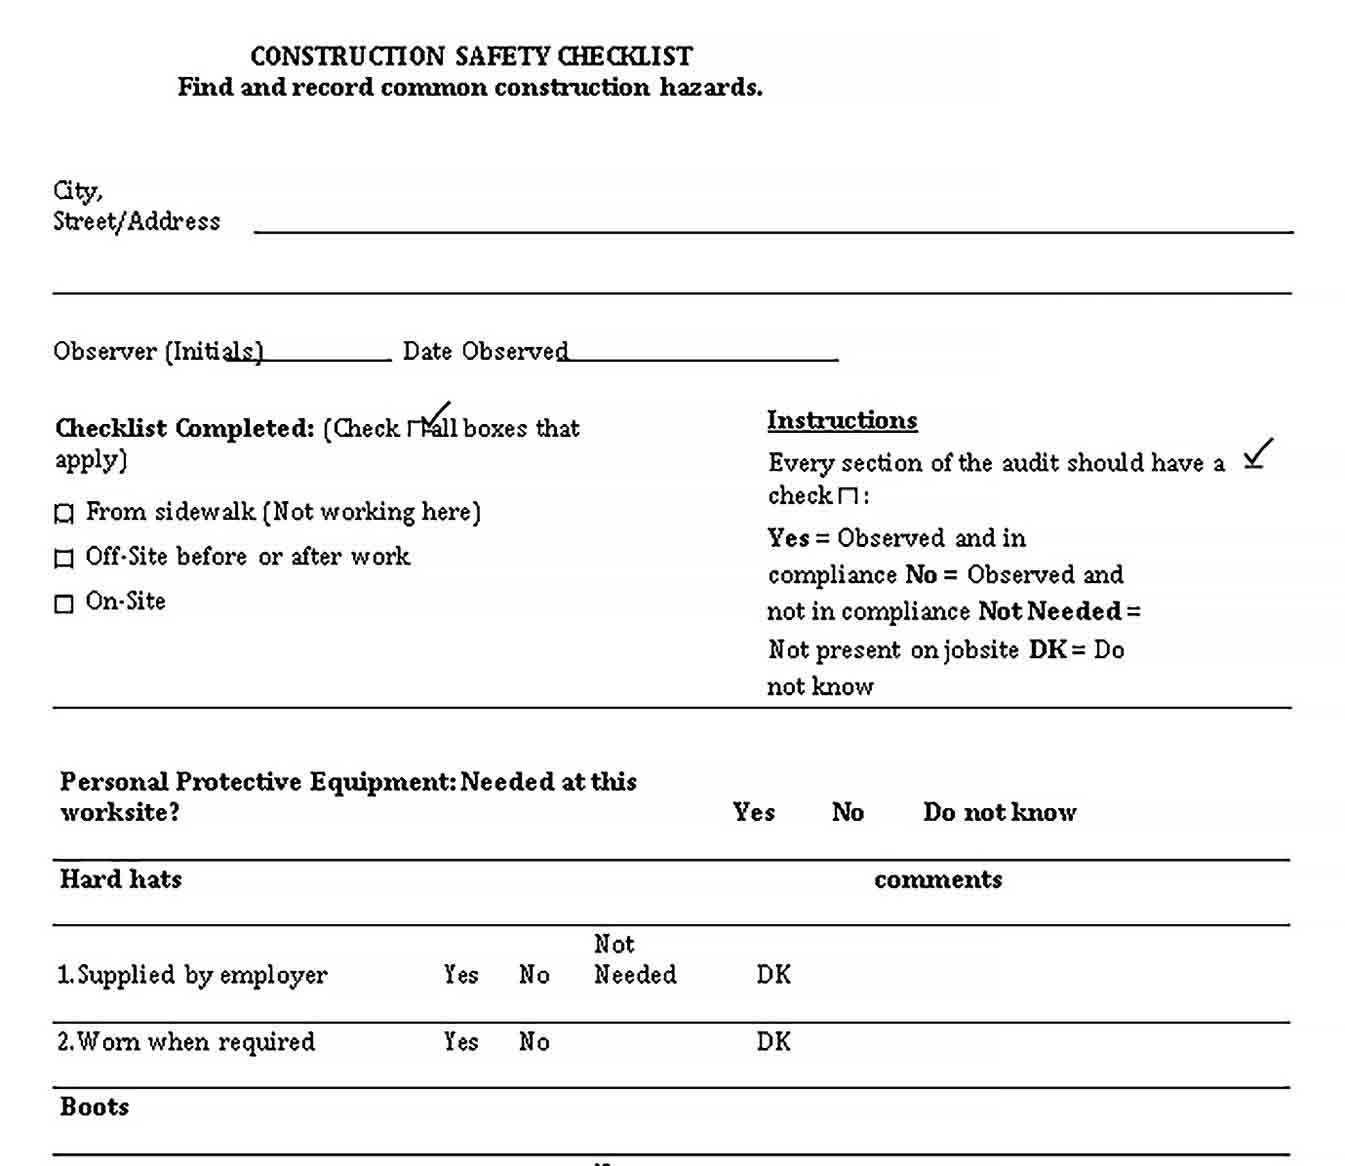 Template Construction Safety Checklist Template